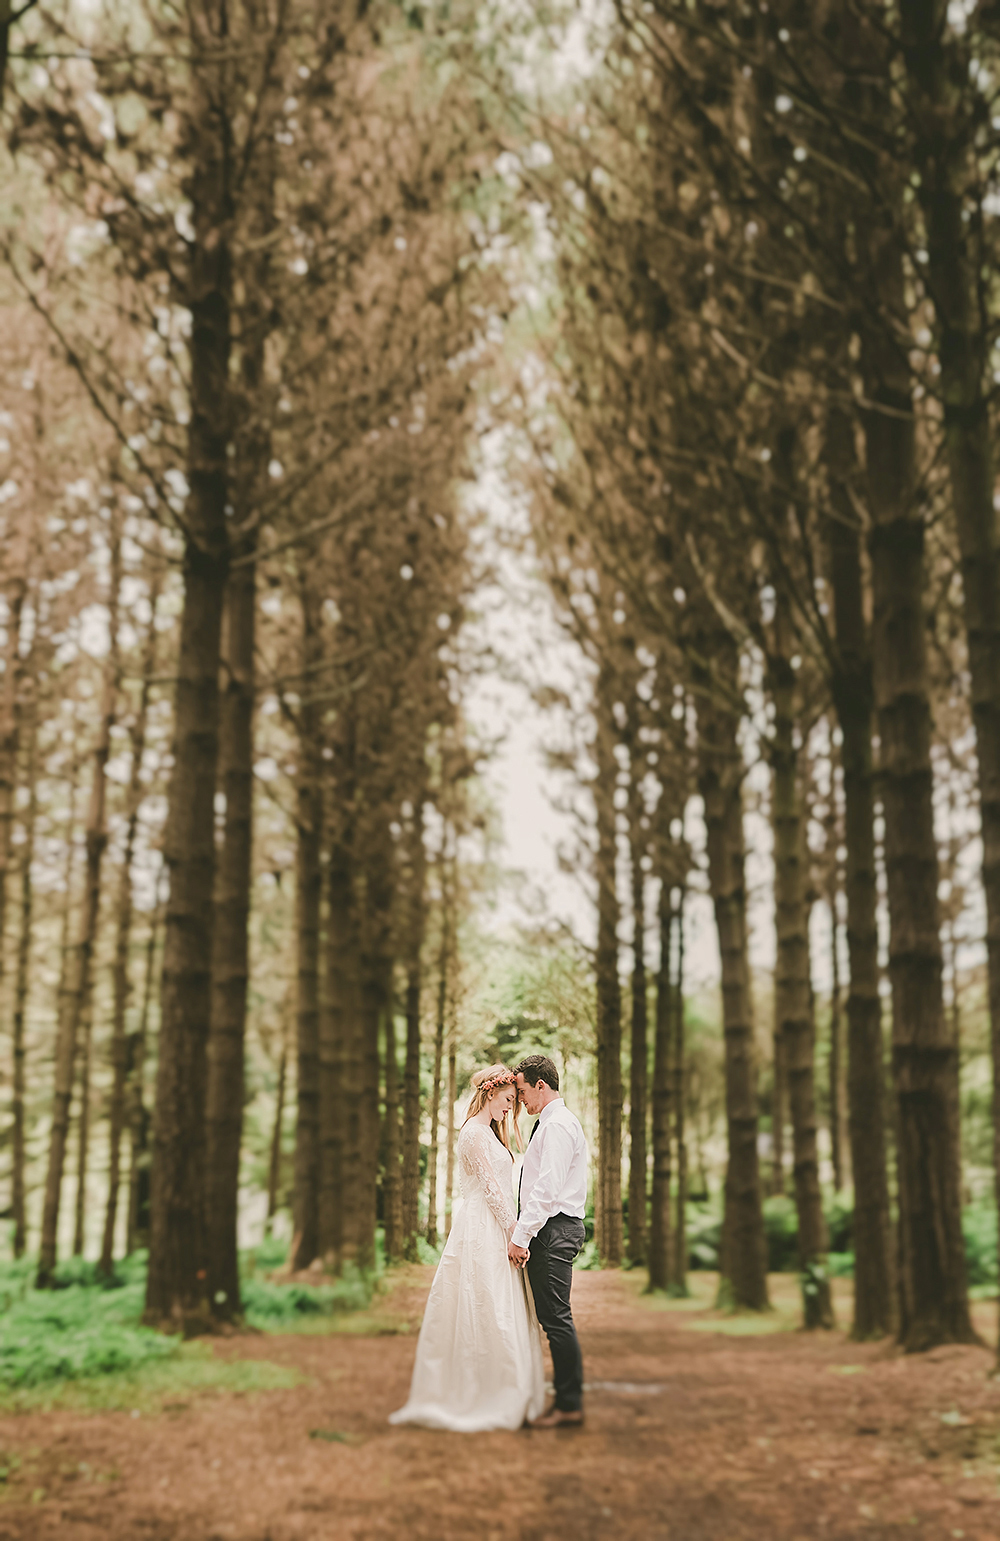 Hunua Ranges Auckland forest boho Wedding photographer rainy day romantic